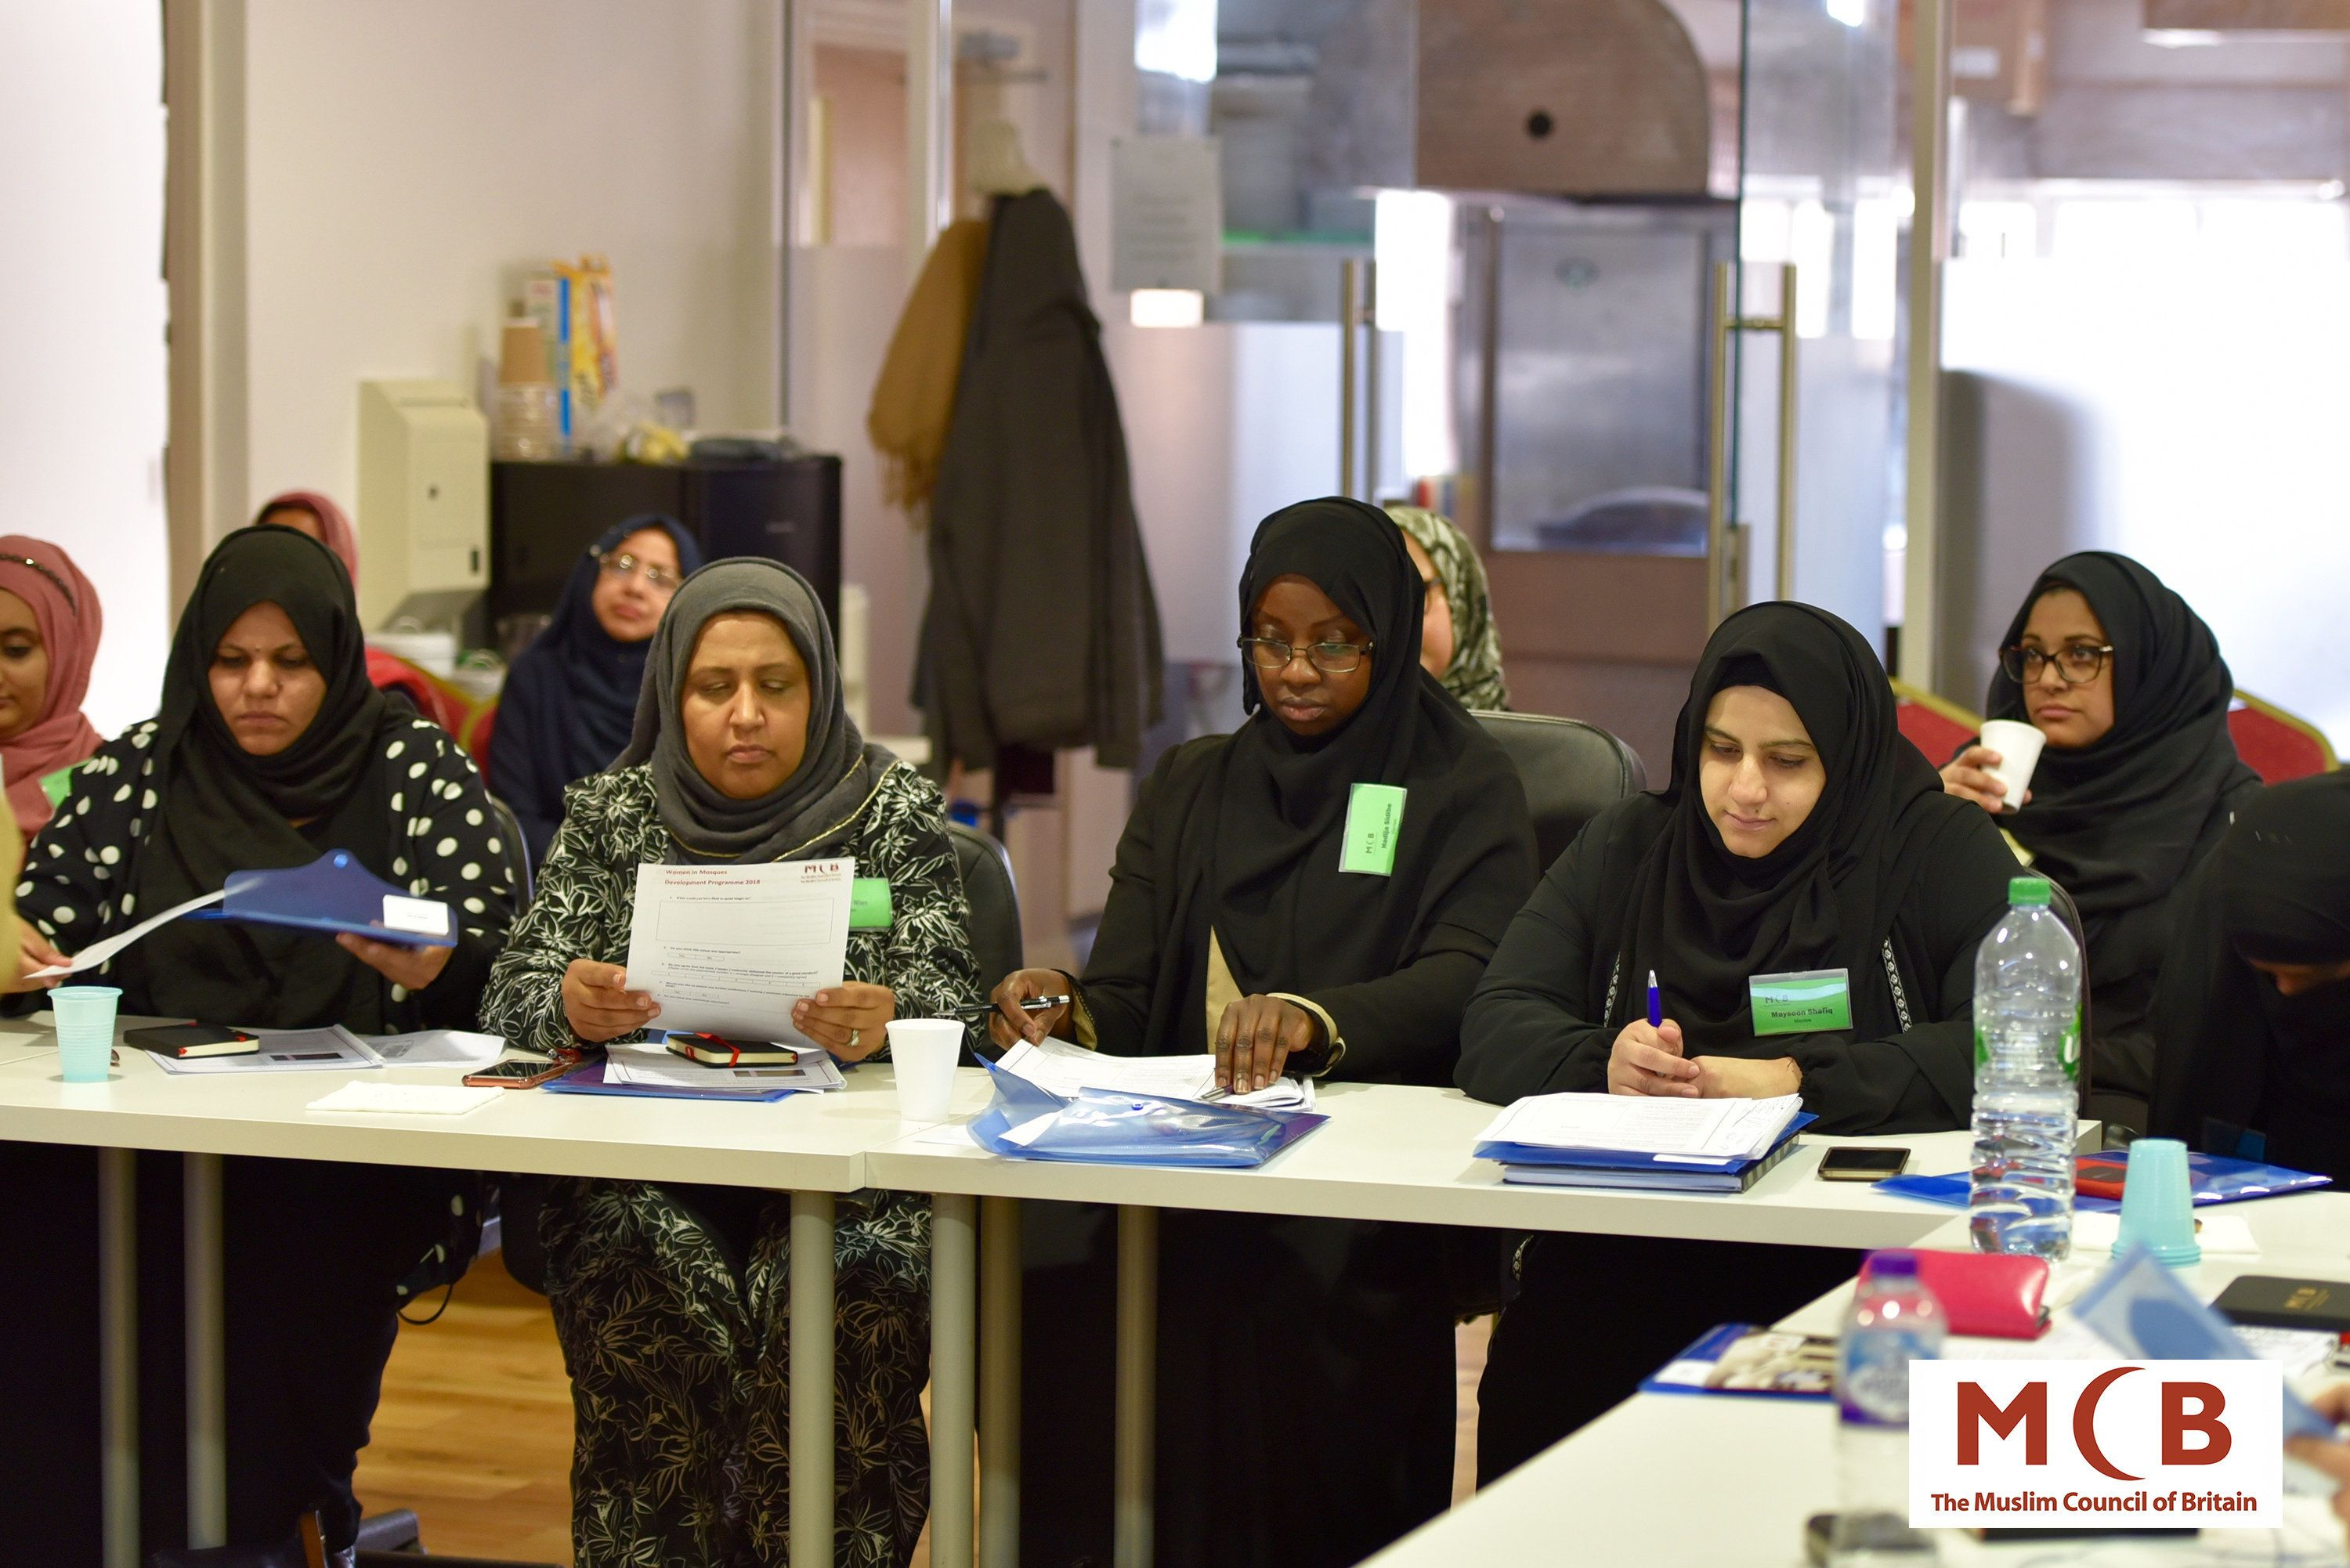 Meet The Trailblazing Women Training To Be The UK's First Female Mosque